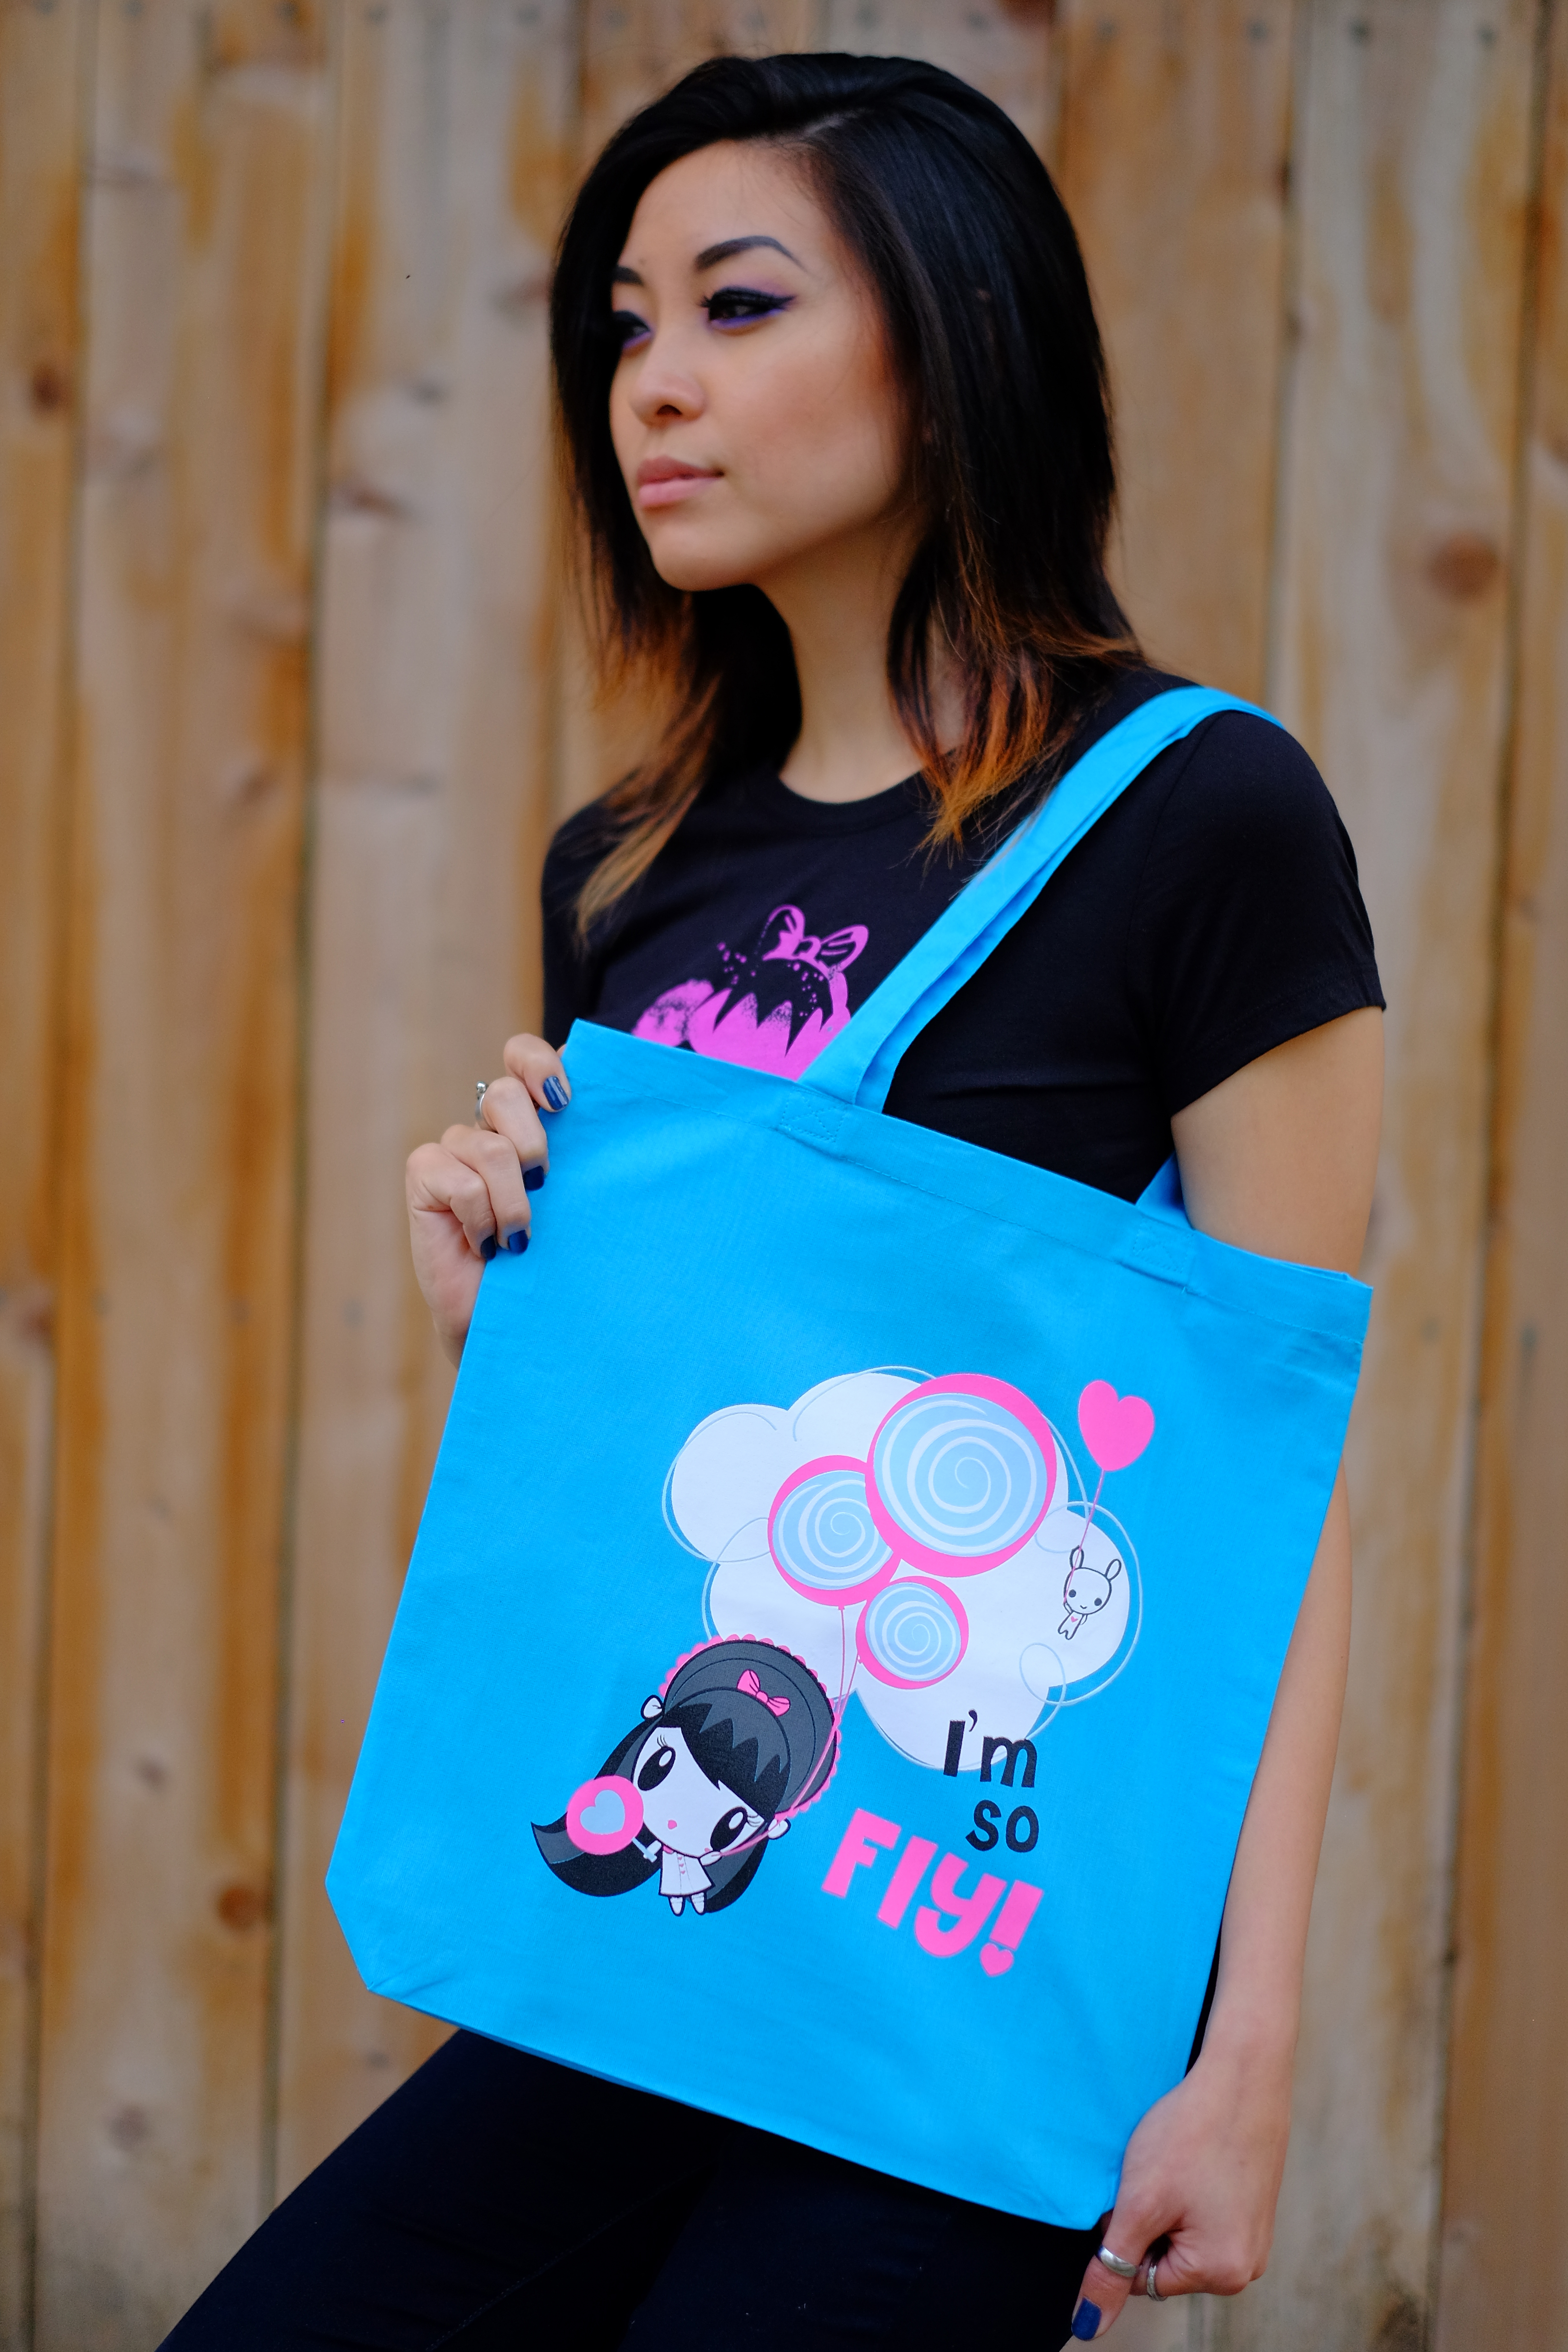 Woman with Lolligag tote over her shoulder